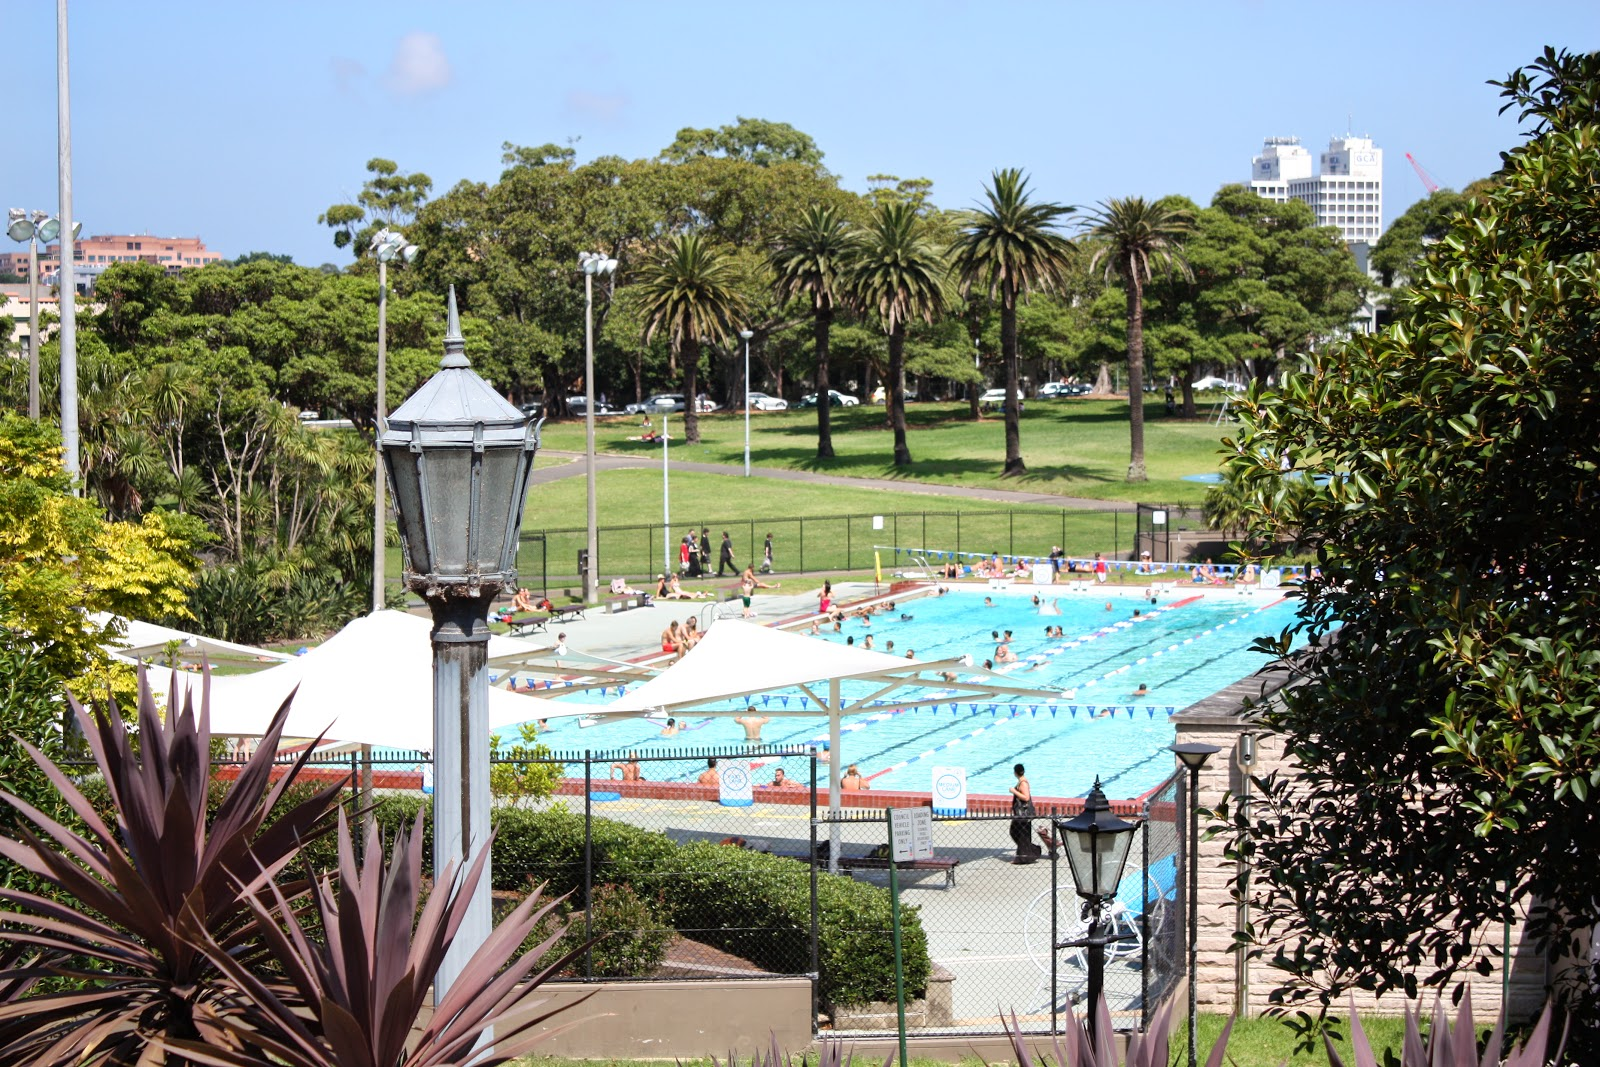 sydney city and suburbs camperdown victoria park pool theme day celebrating summer